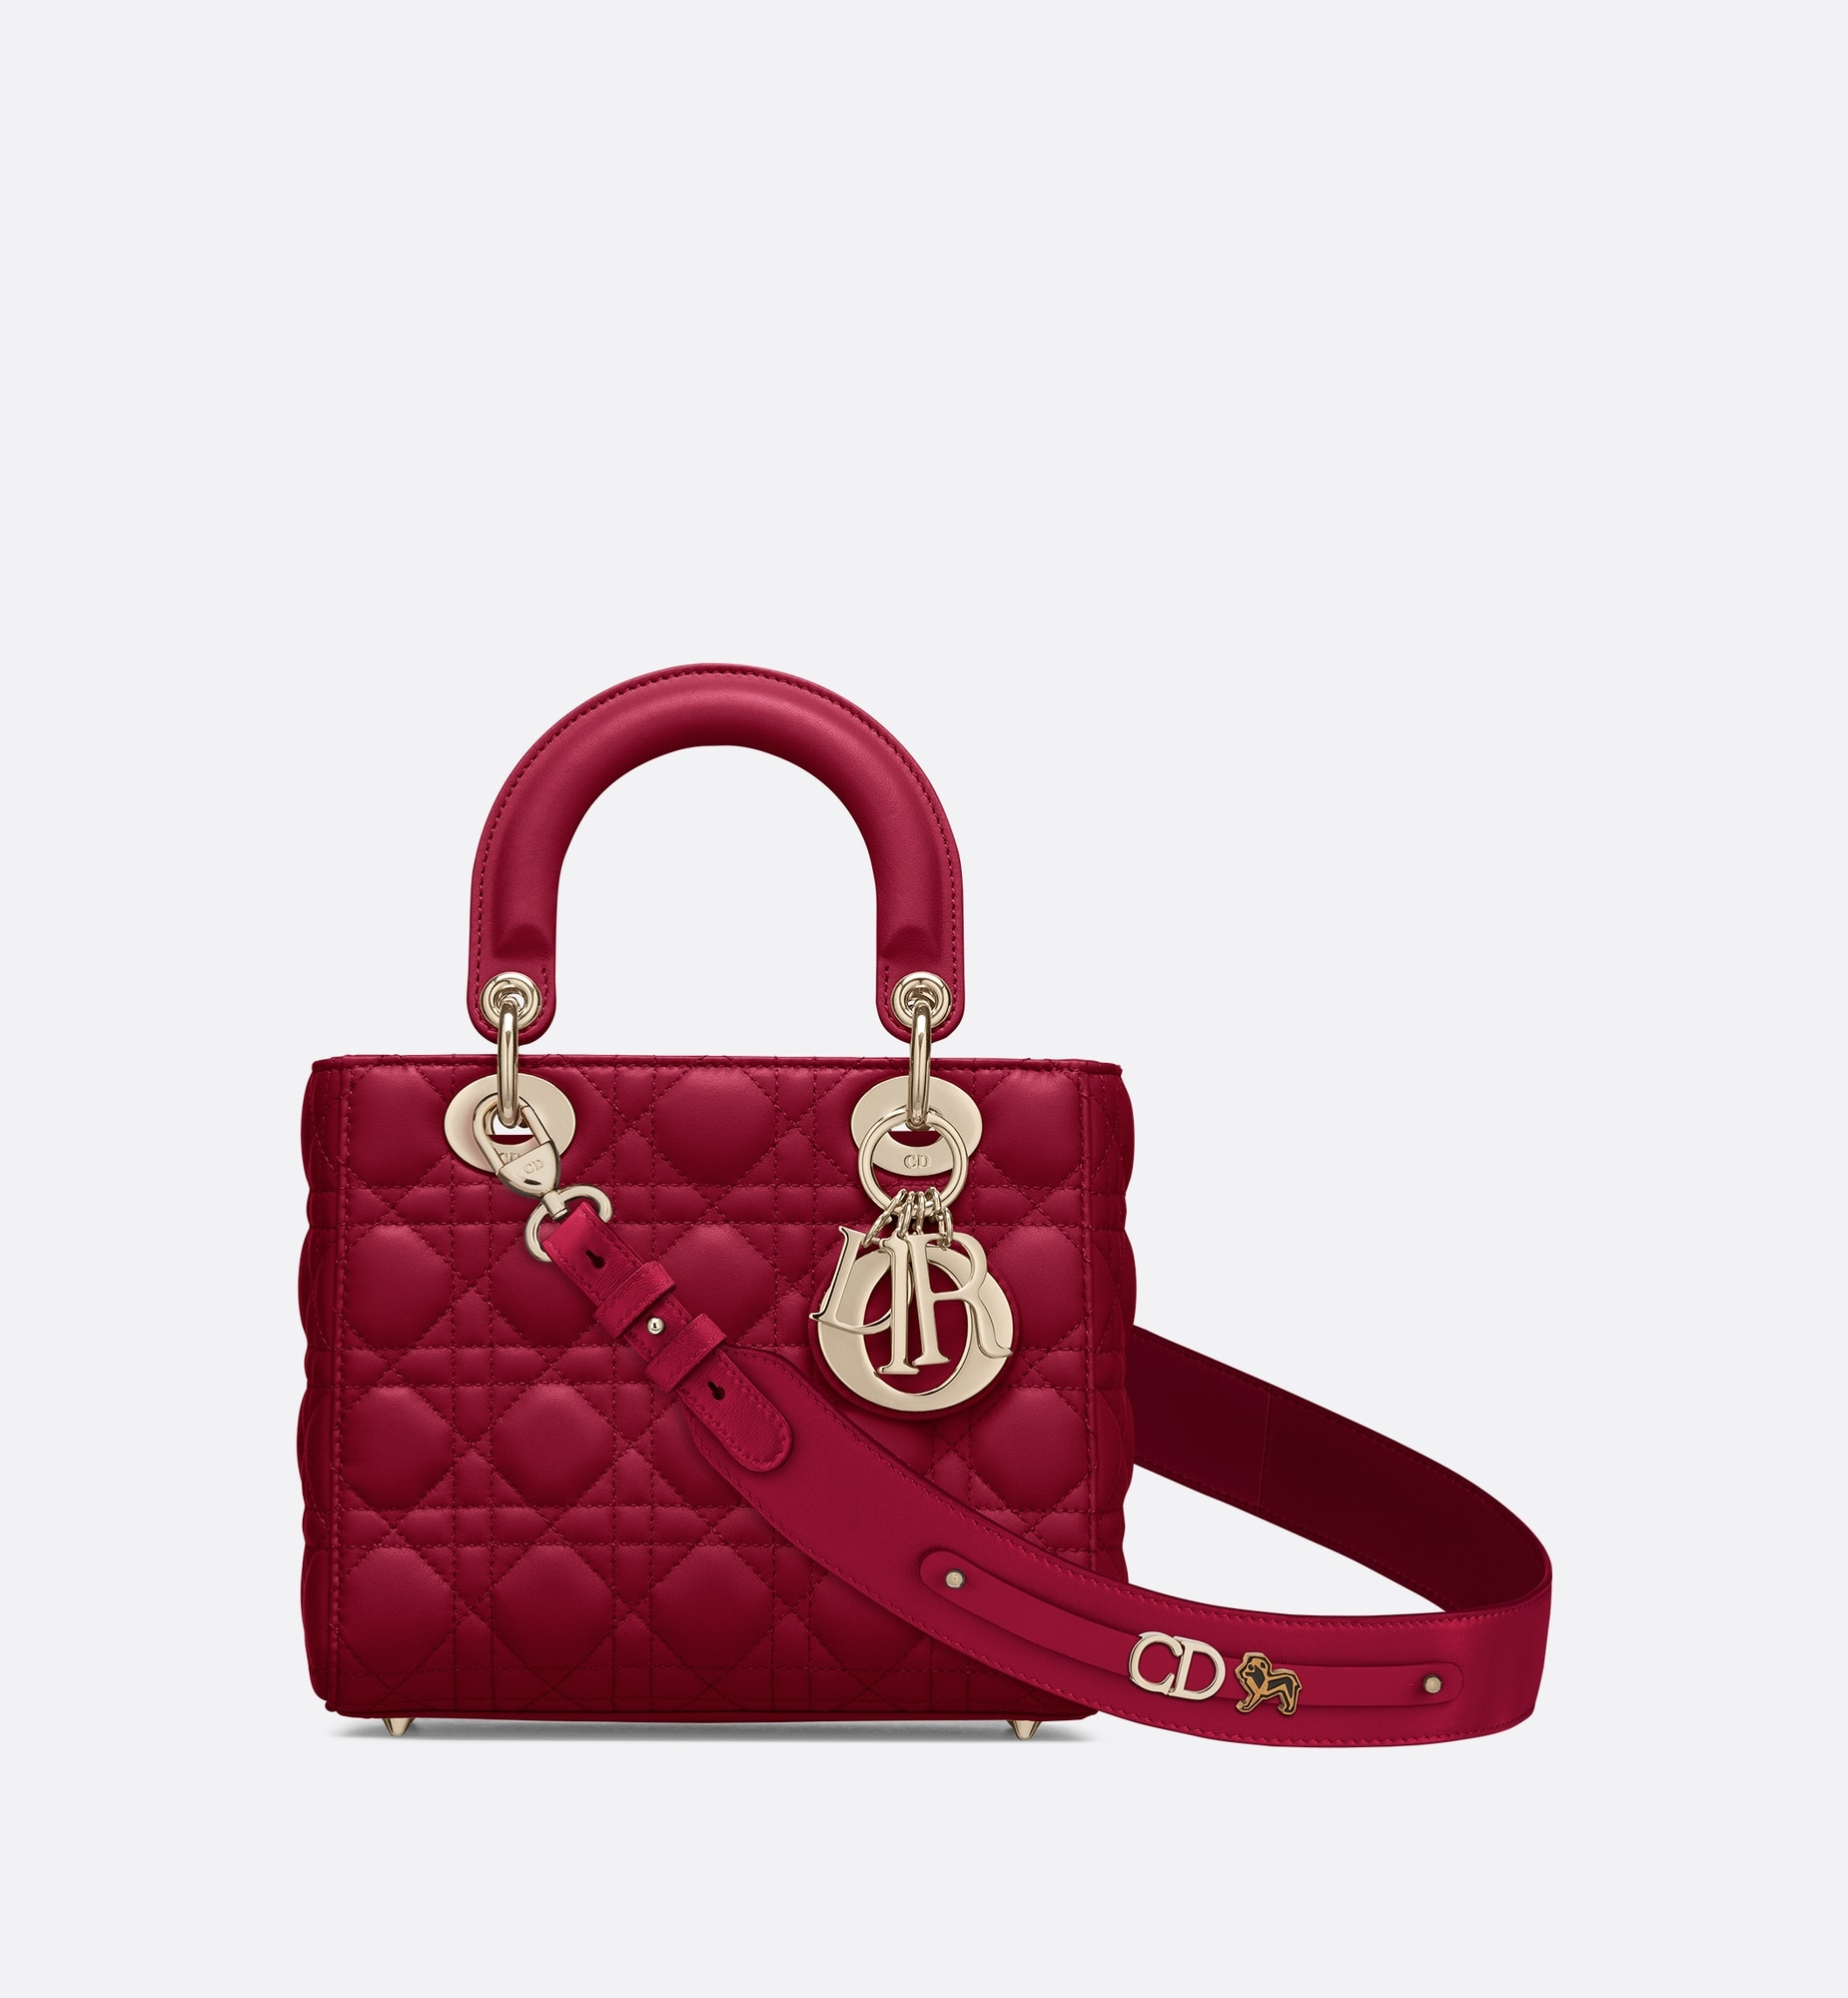 Lady Dior My ABCDior Bag Front view